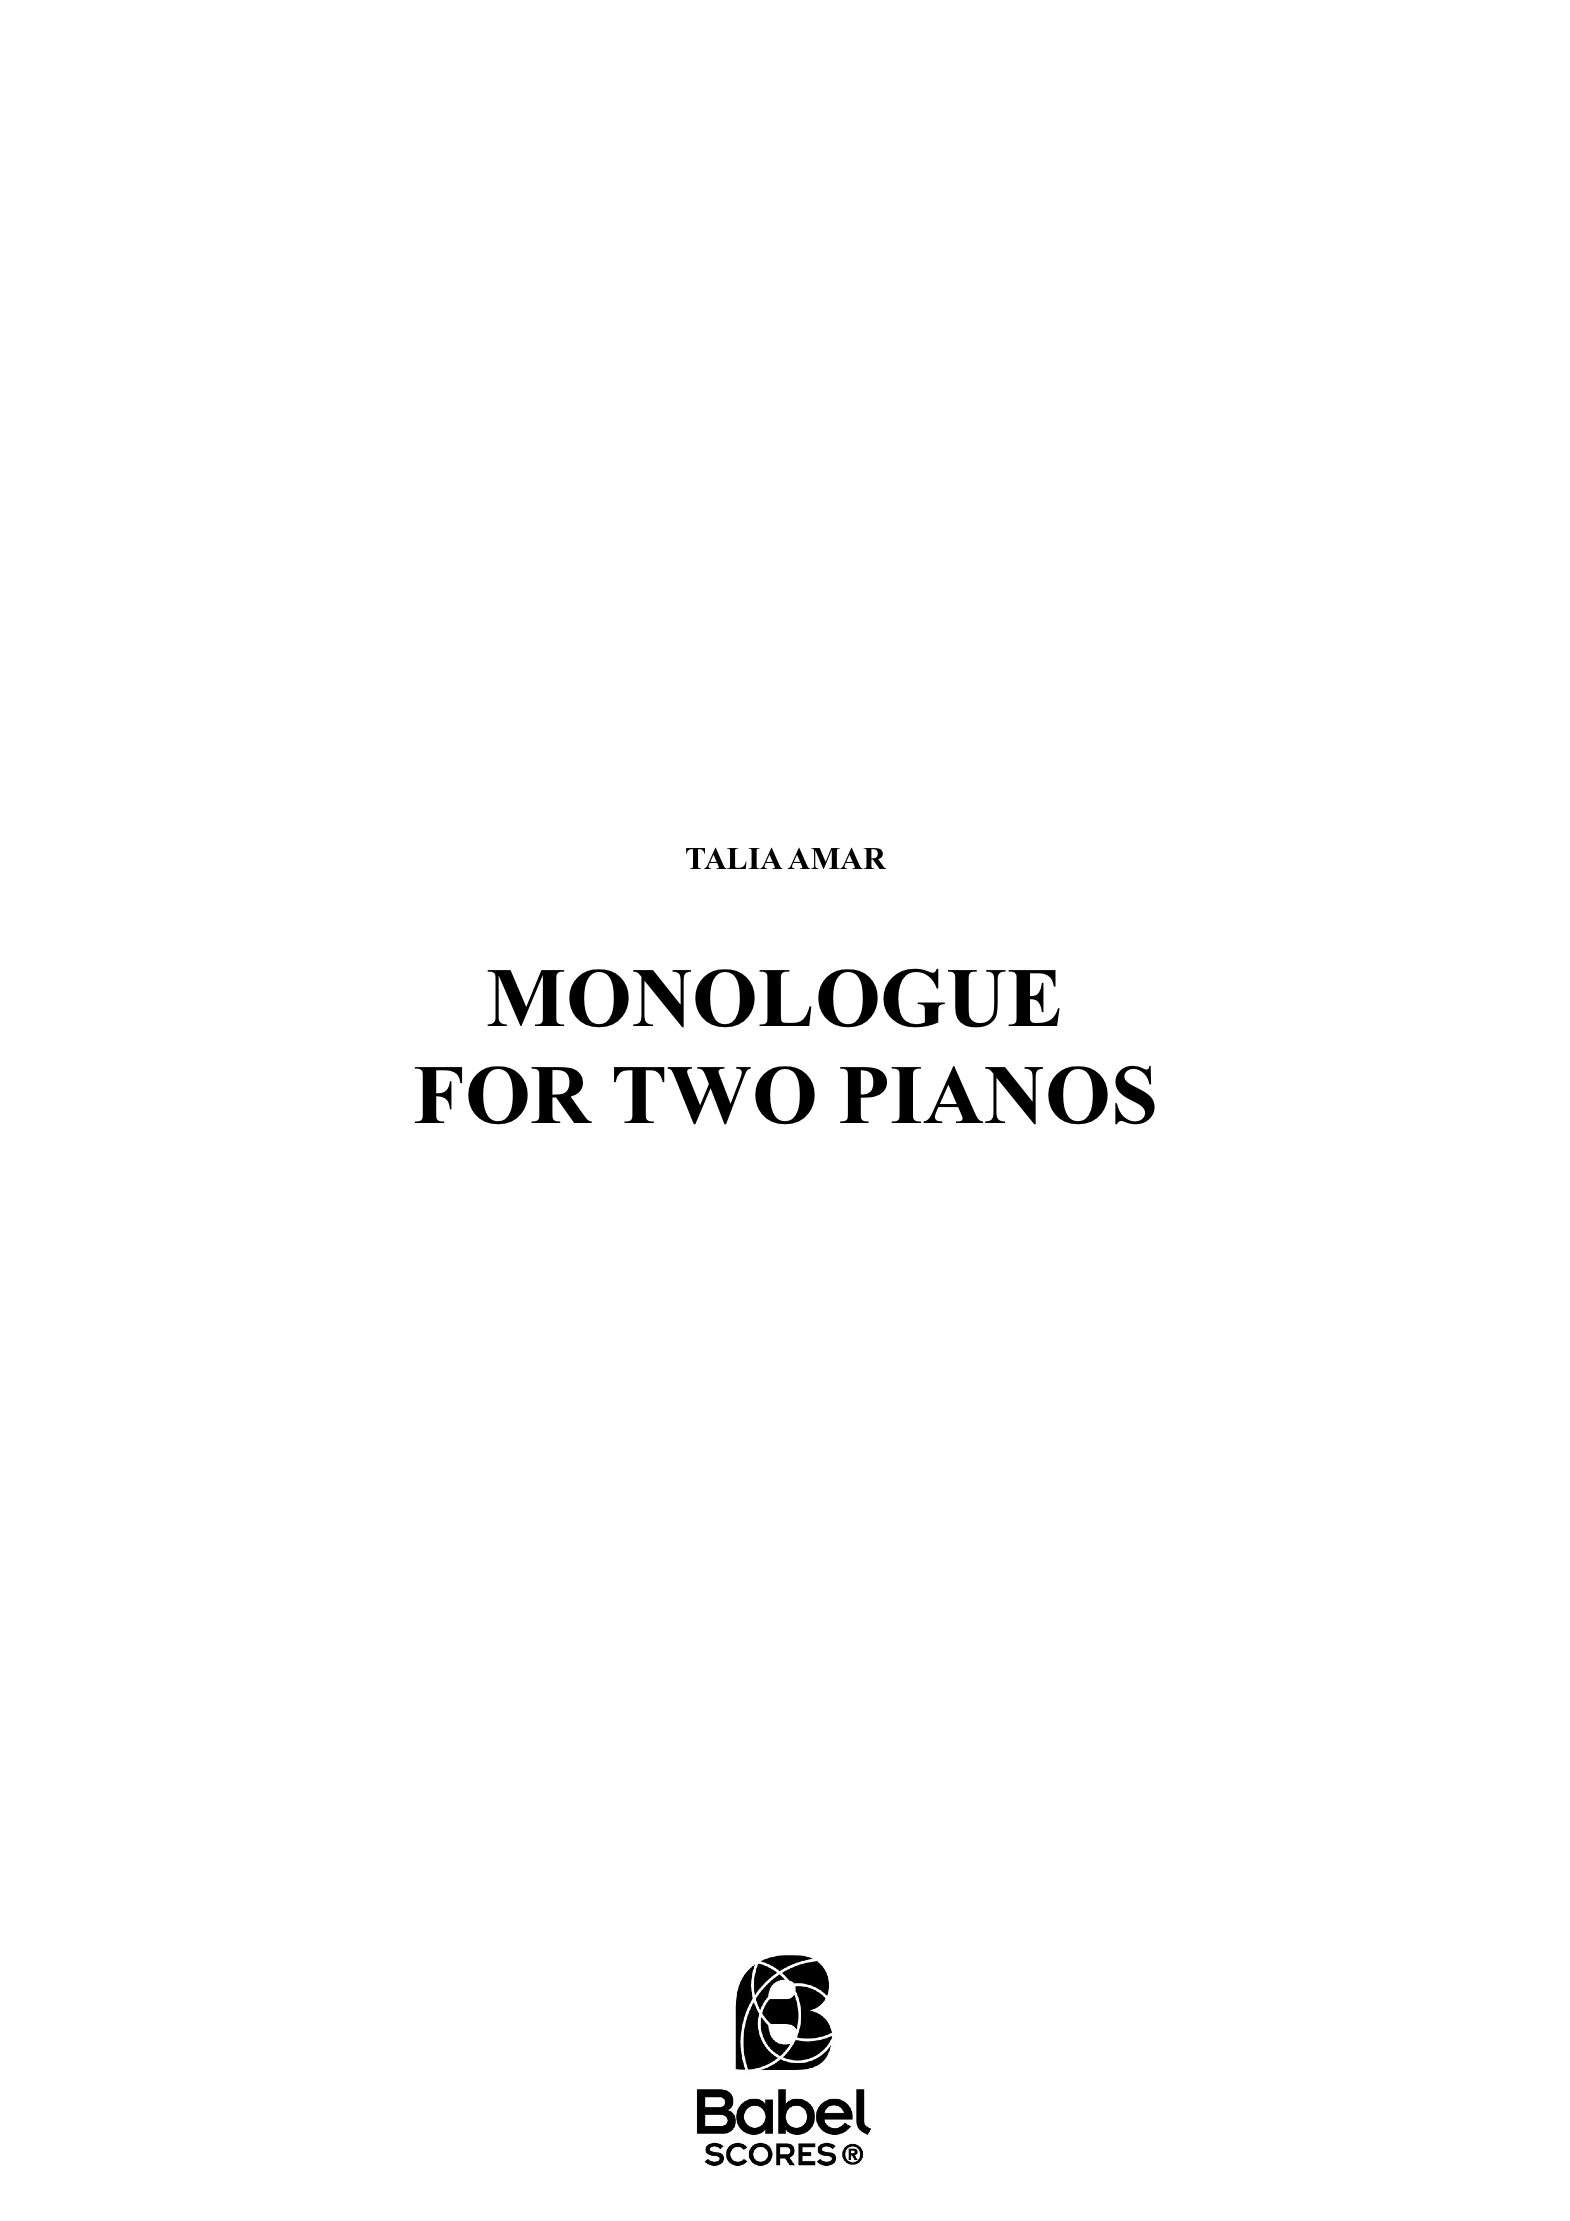 Monologue for two pianos z